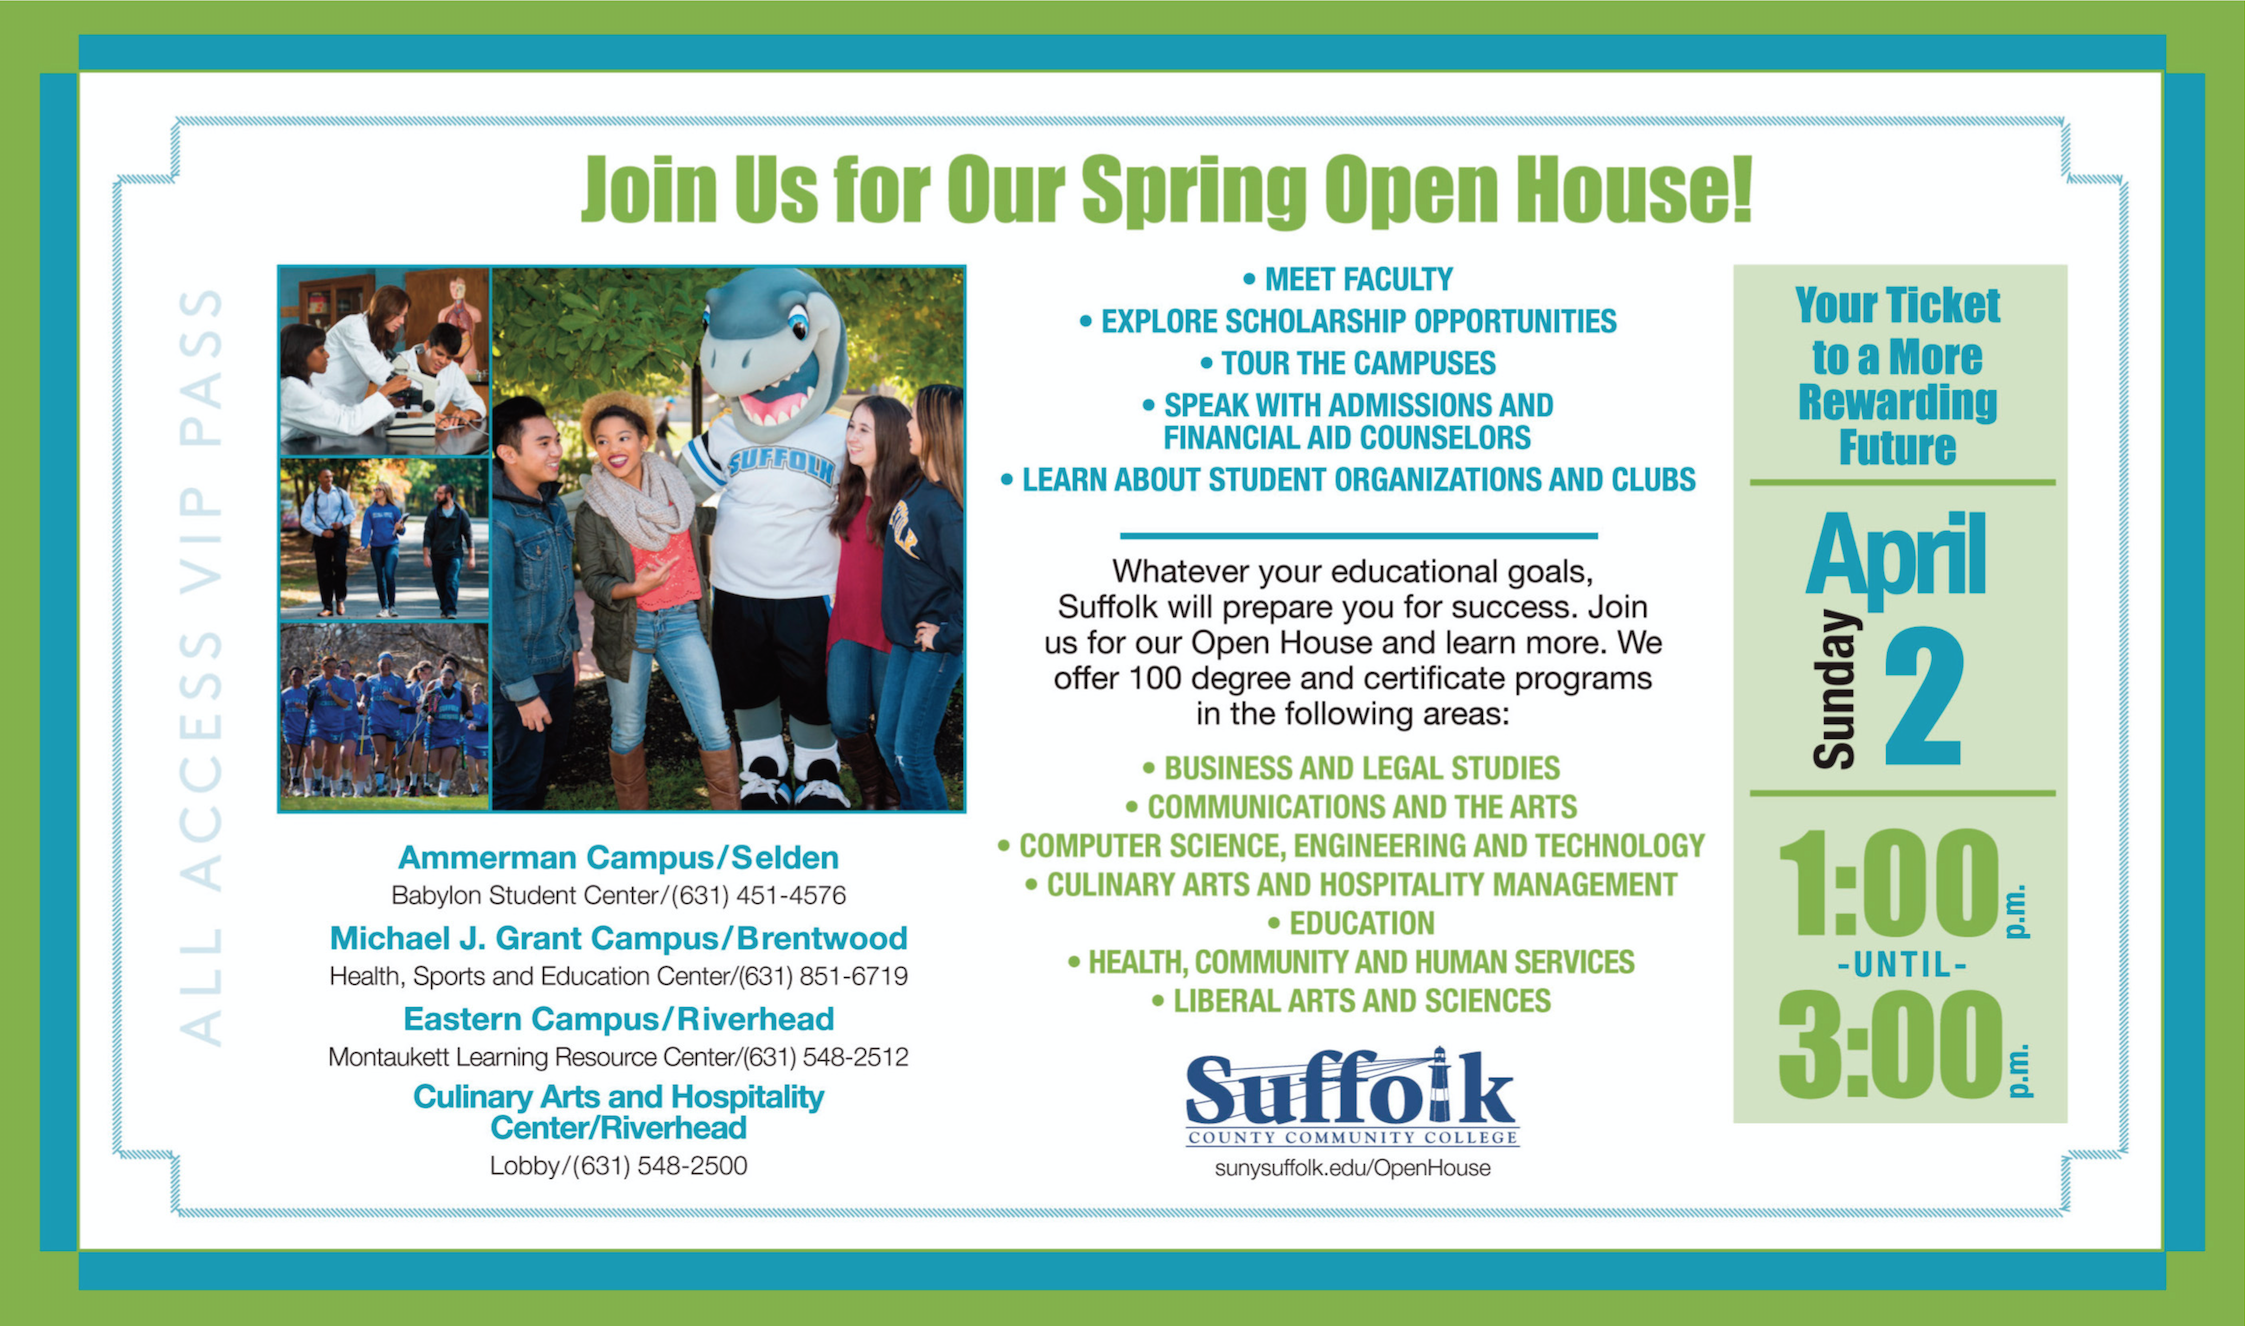 Suffolk Open House ad